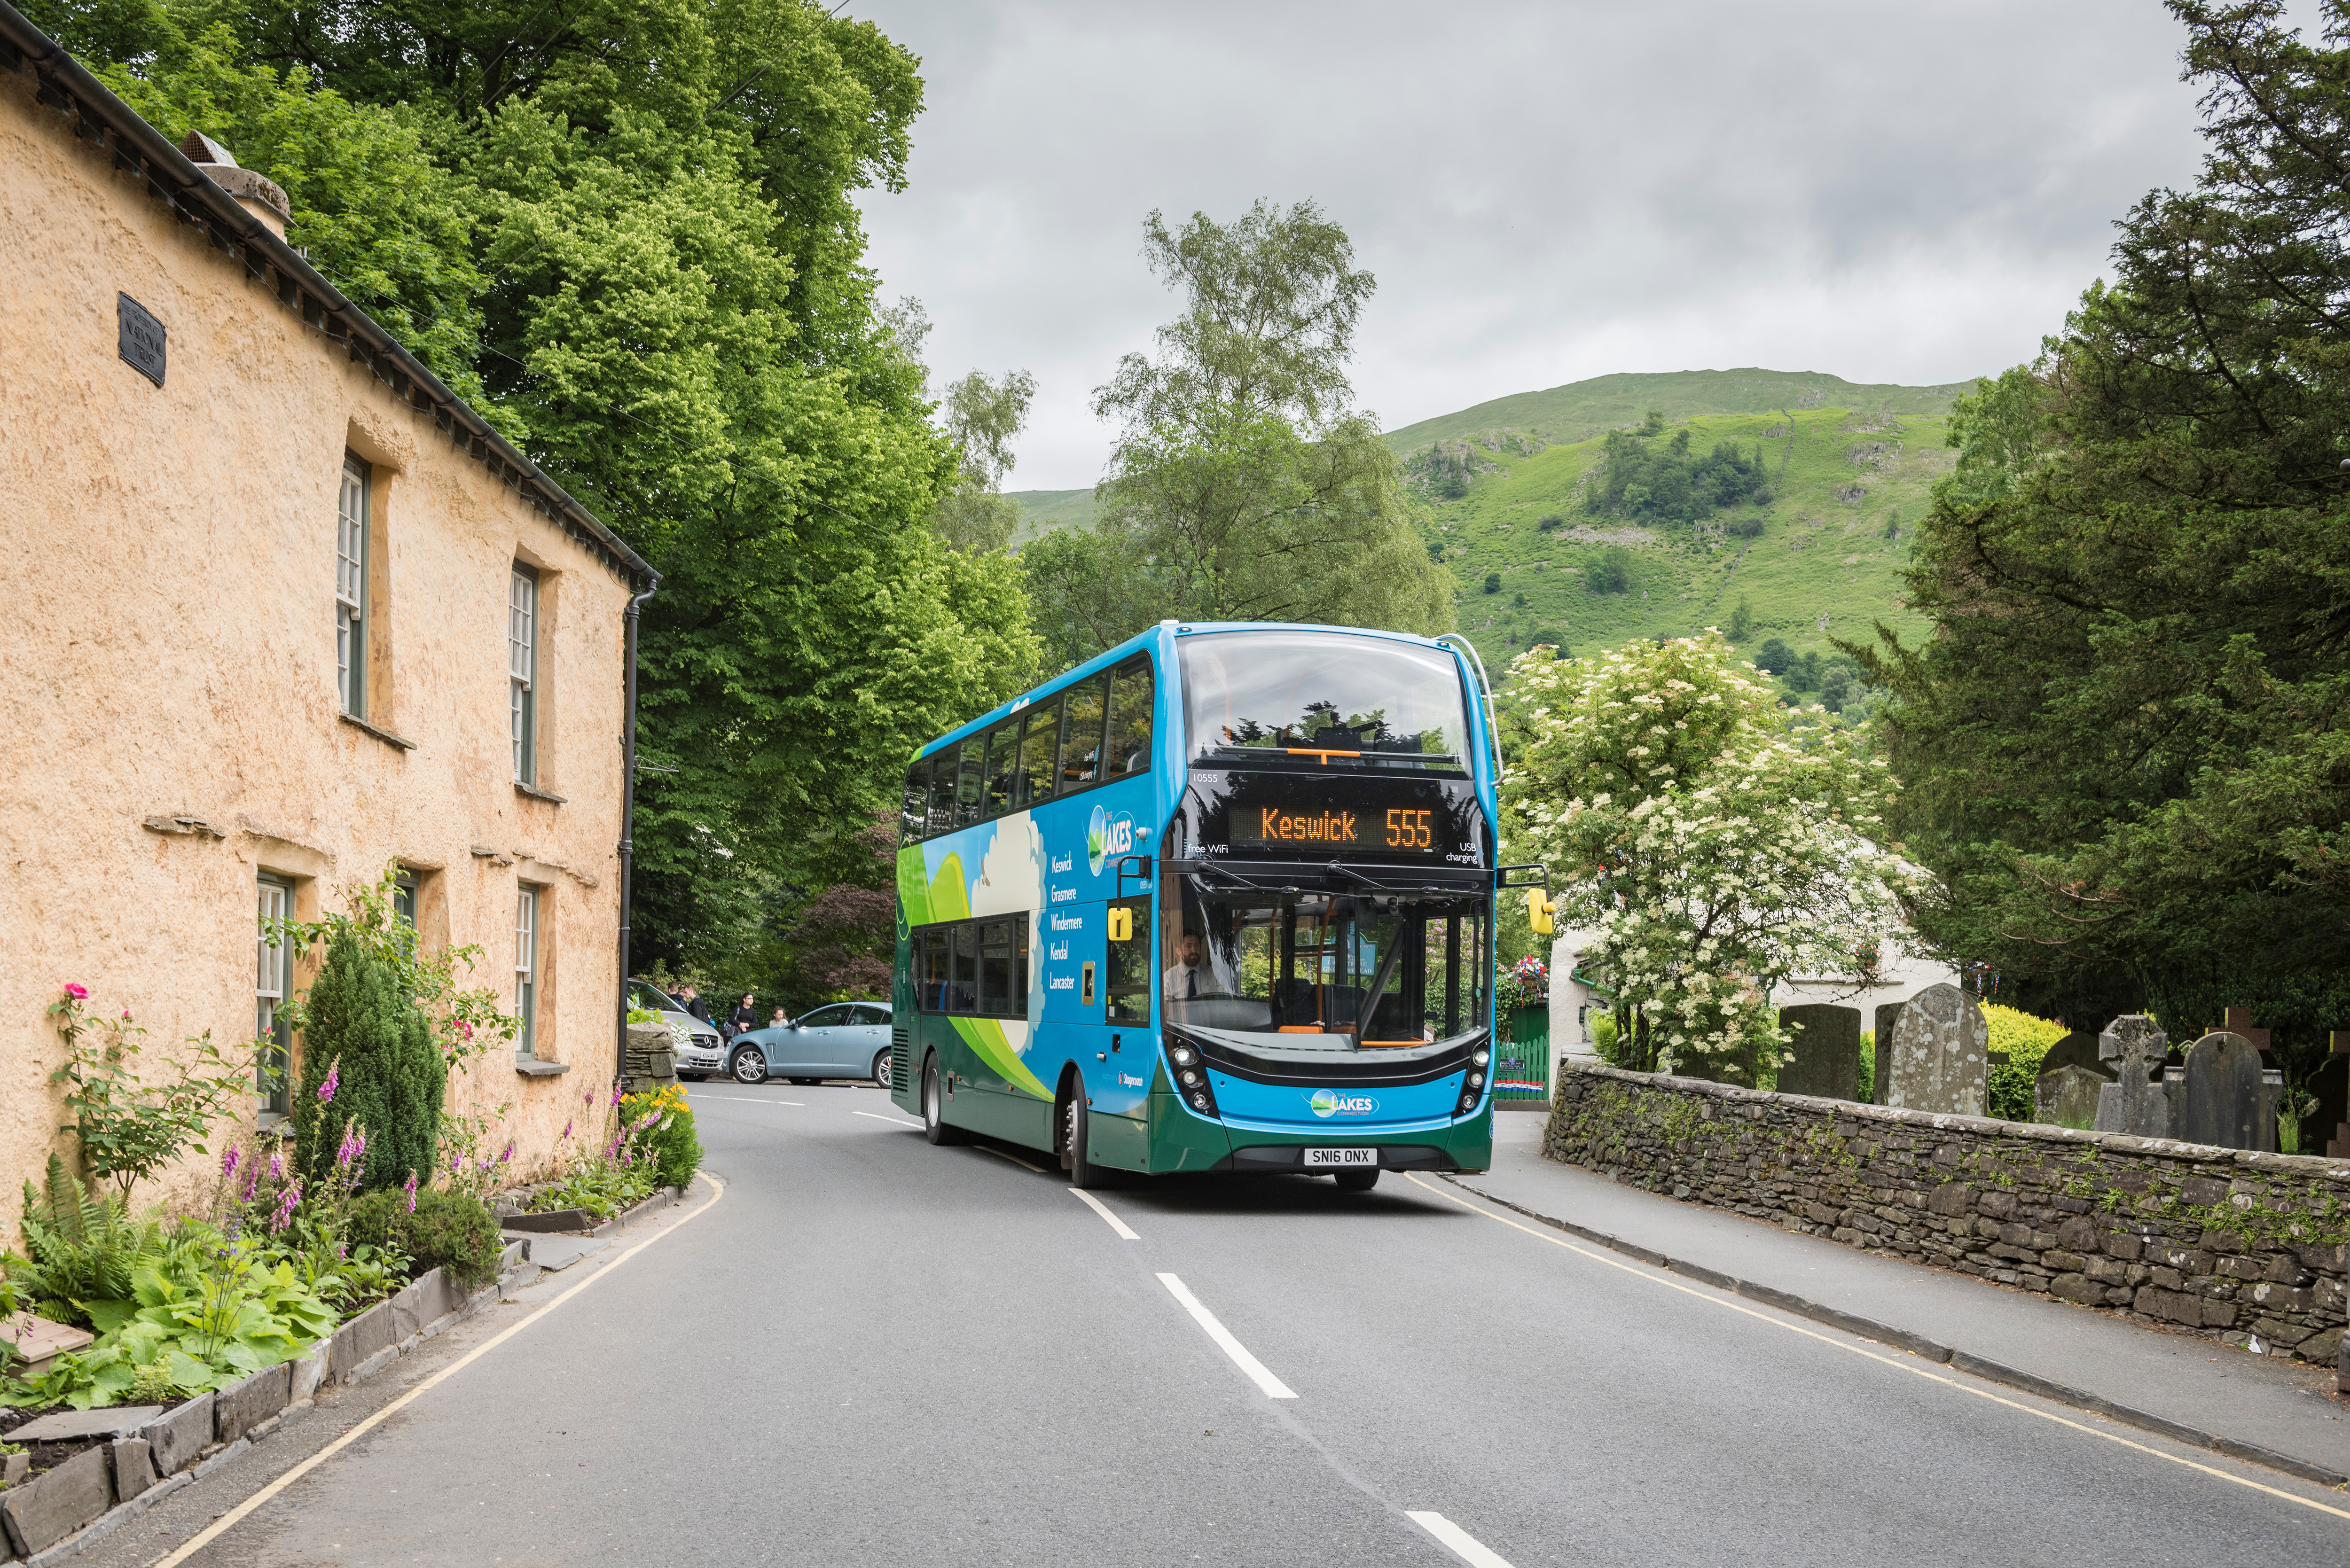 The 555 bus - Stagecoach